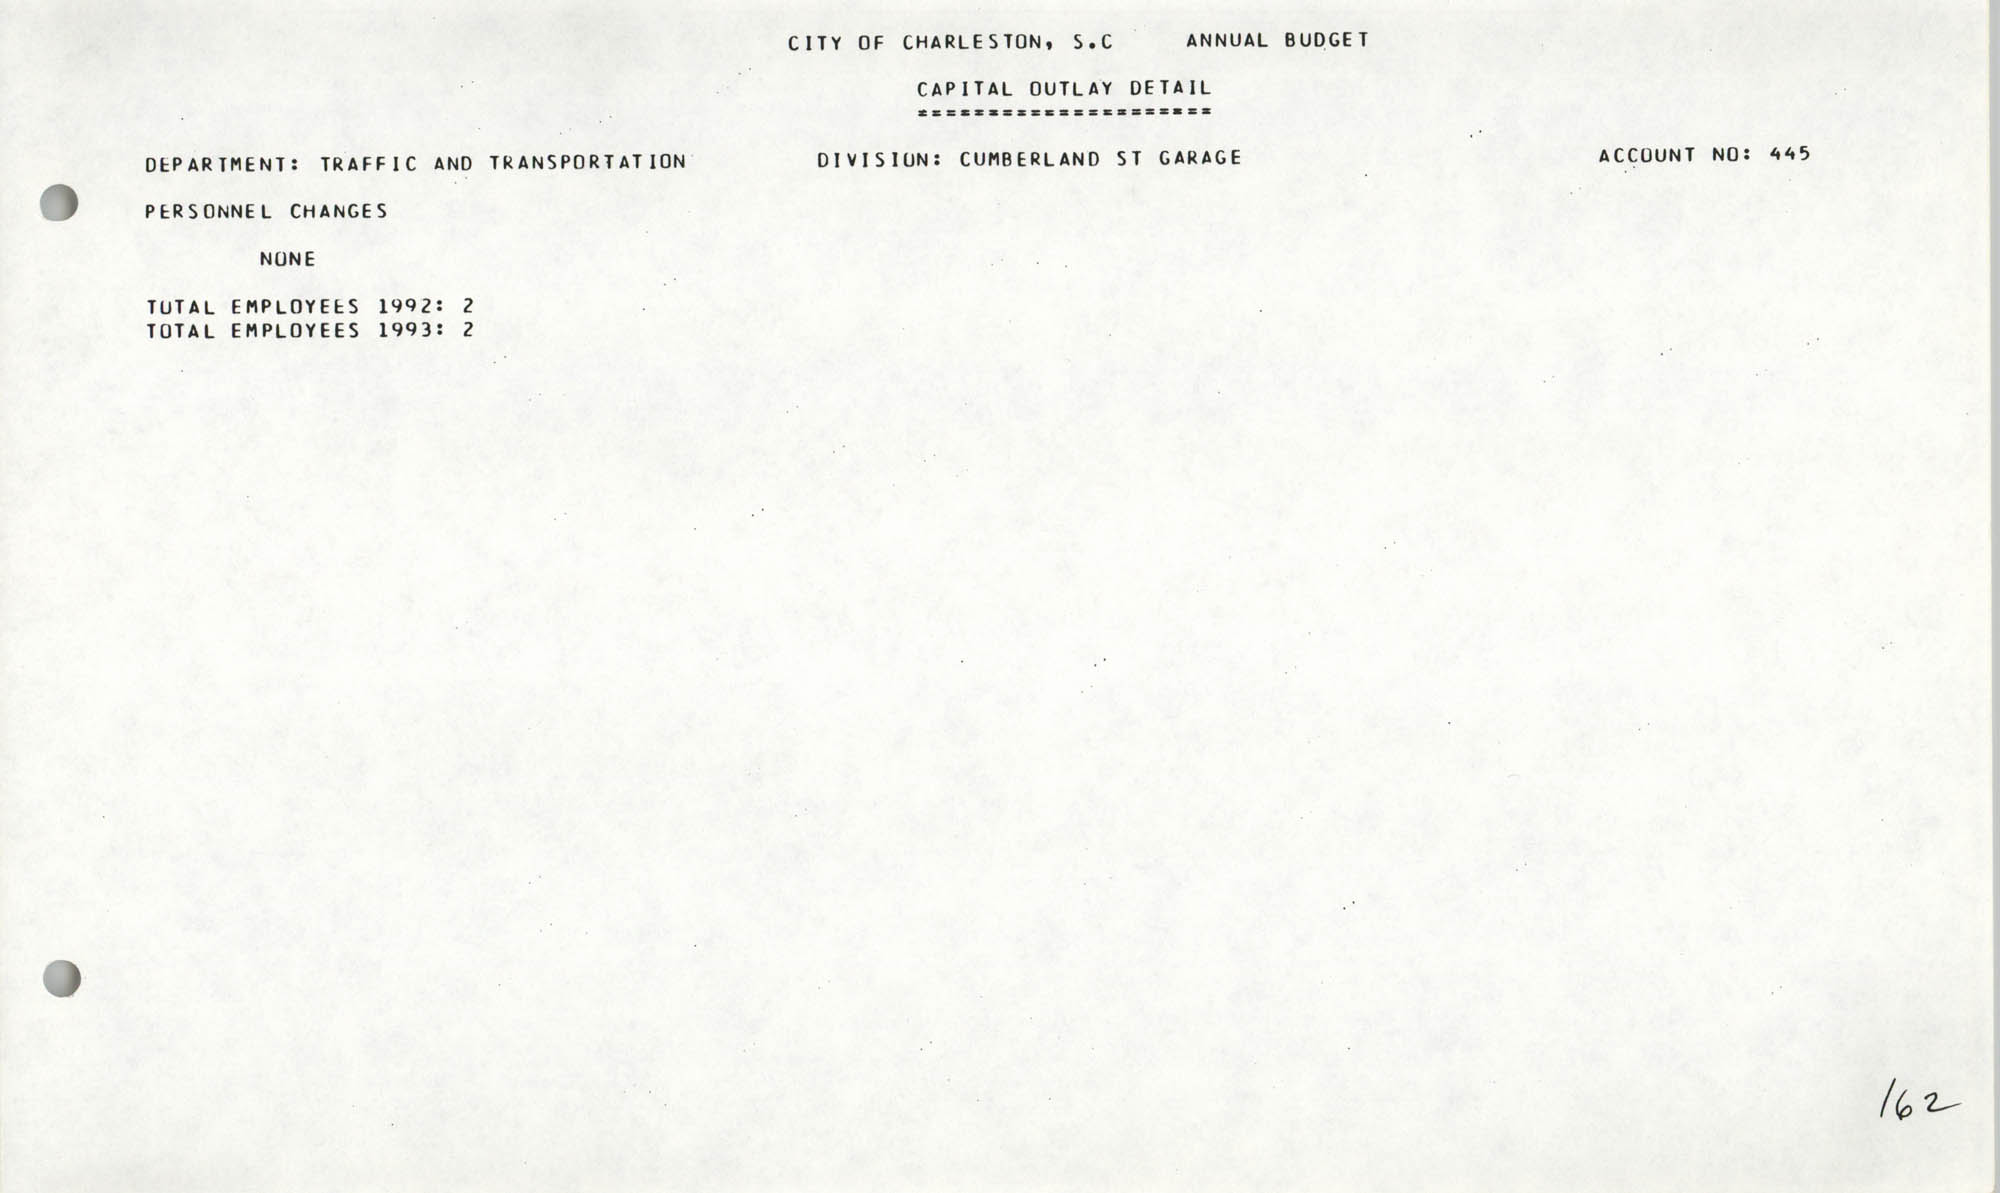 The City Council of Charleston, South Carolina, 1993 Budget, Page 162